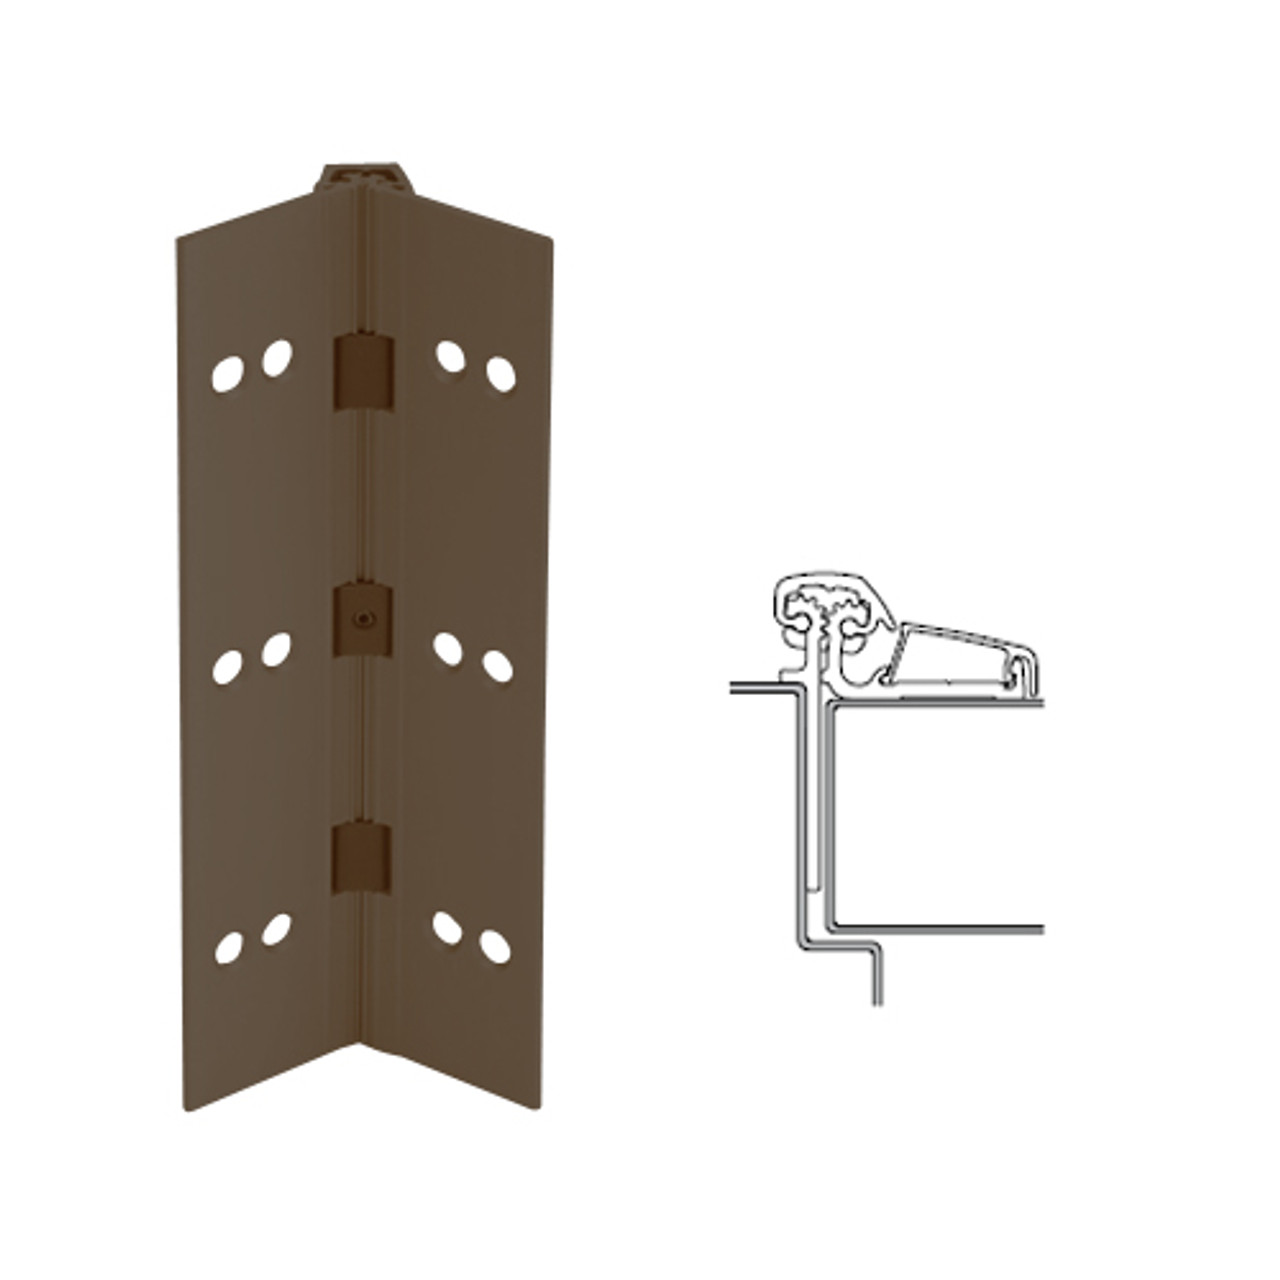 053XY-313AN-83 IVES Adjustable Half Surface Continuous Geared Hinges in Dark Bronze Anodized